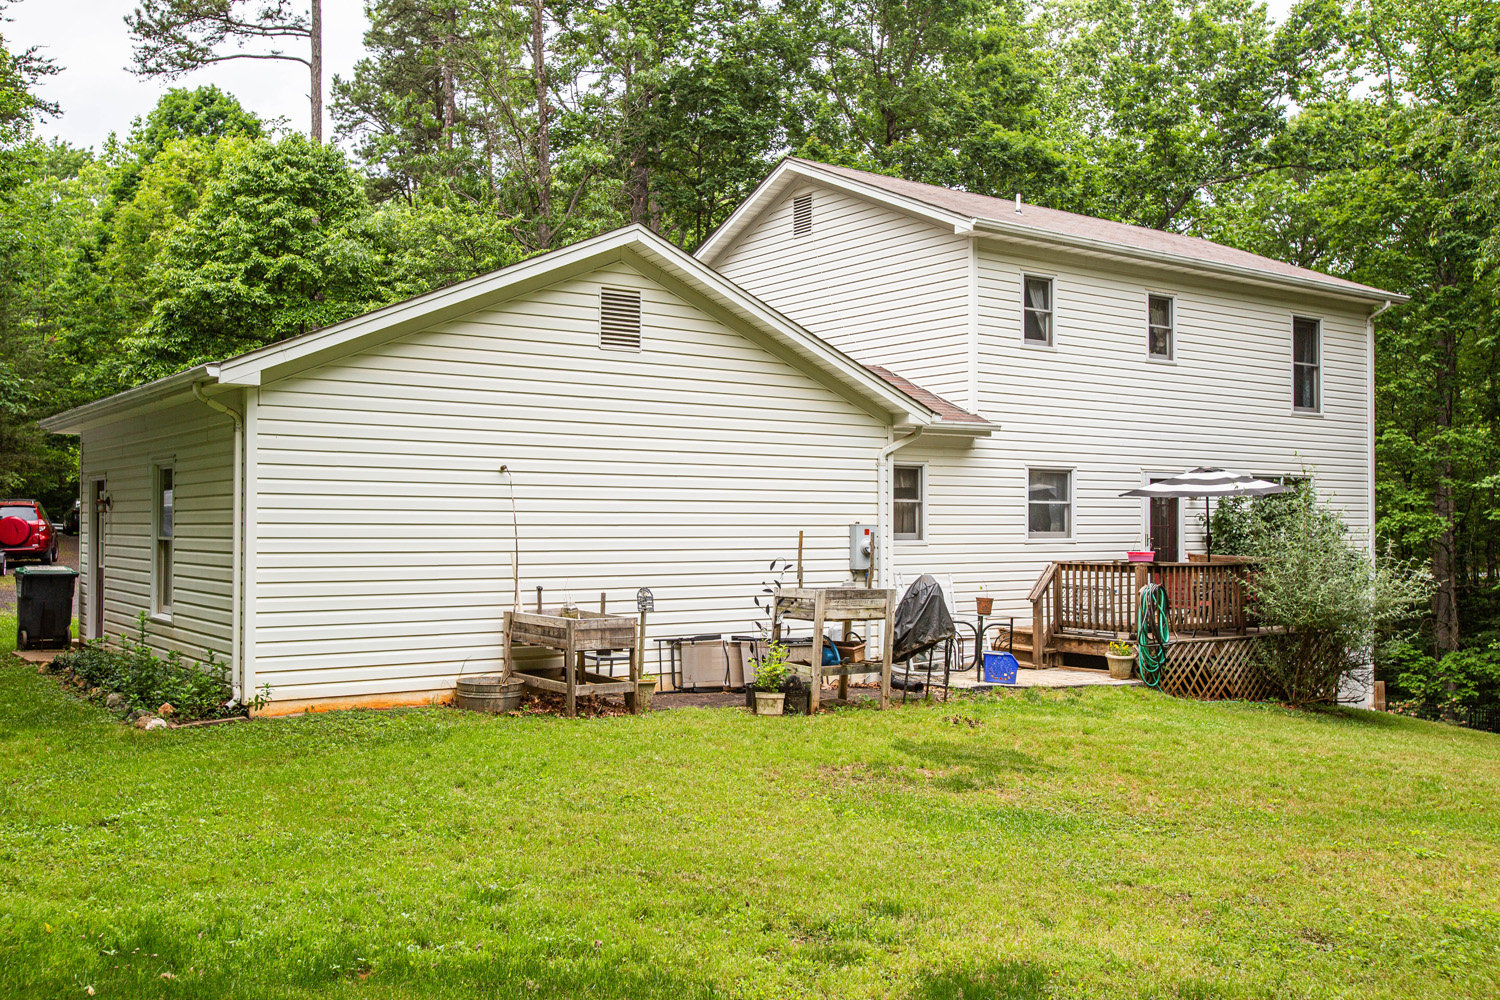 3 BR/2.5 BA Home on 1.3 +/- Acre Lot in Merrimac South Development--Culpeper County, VA